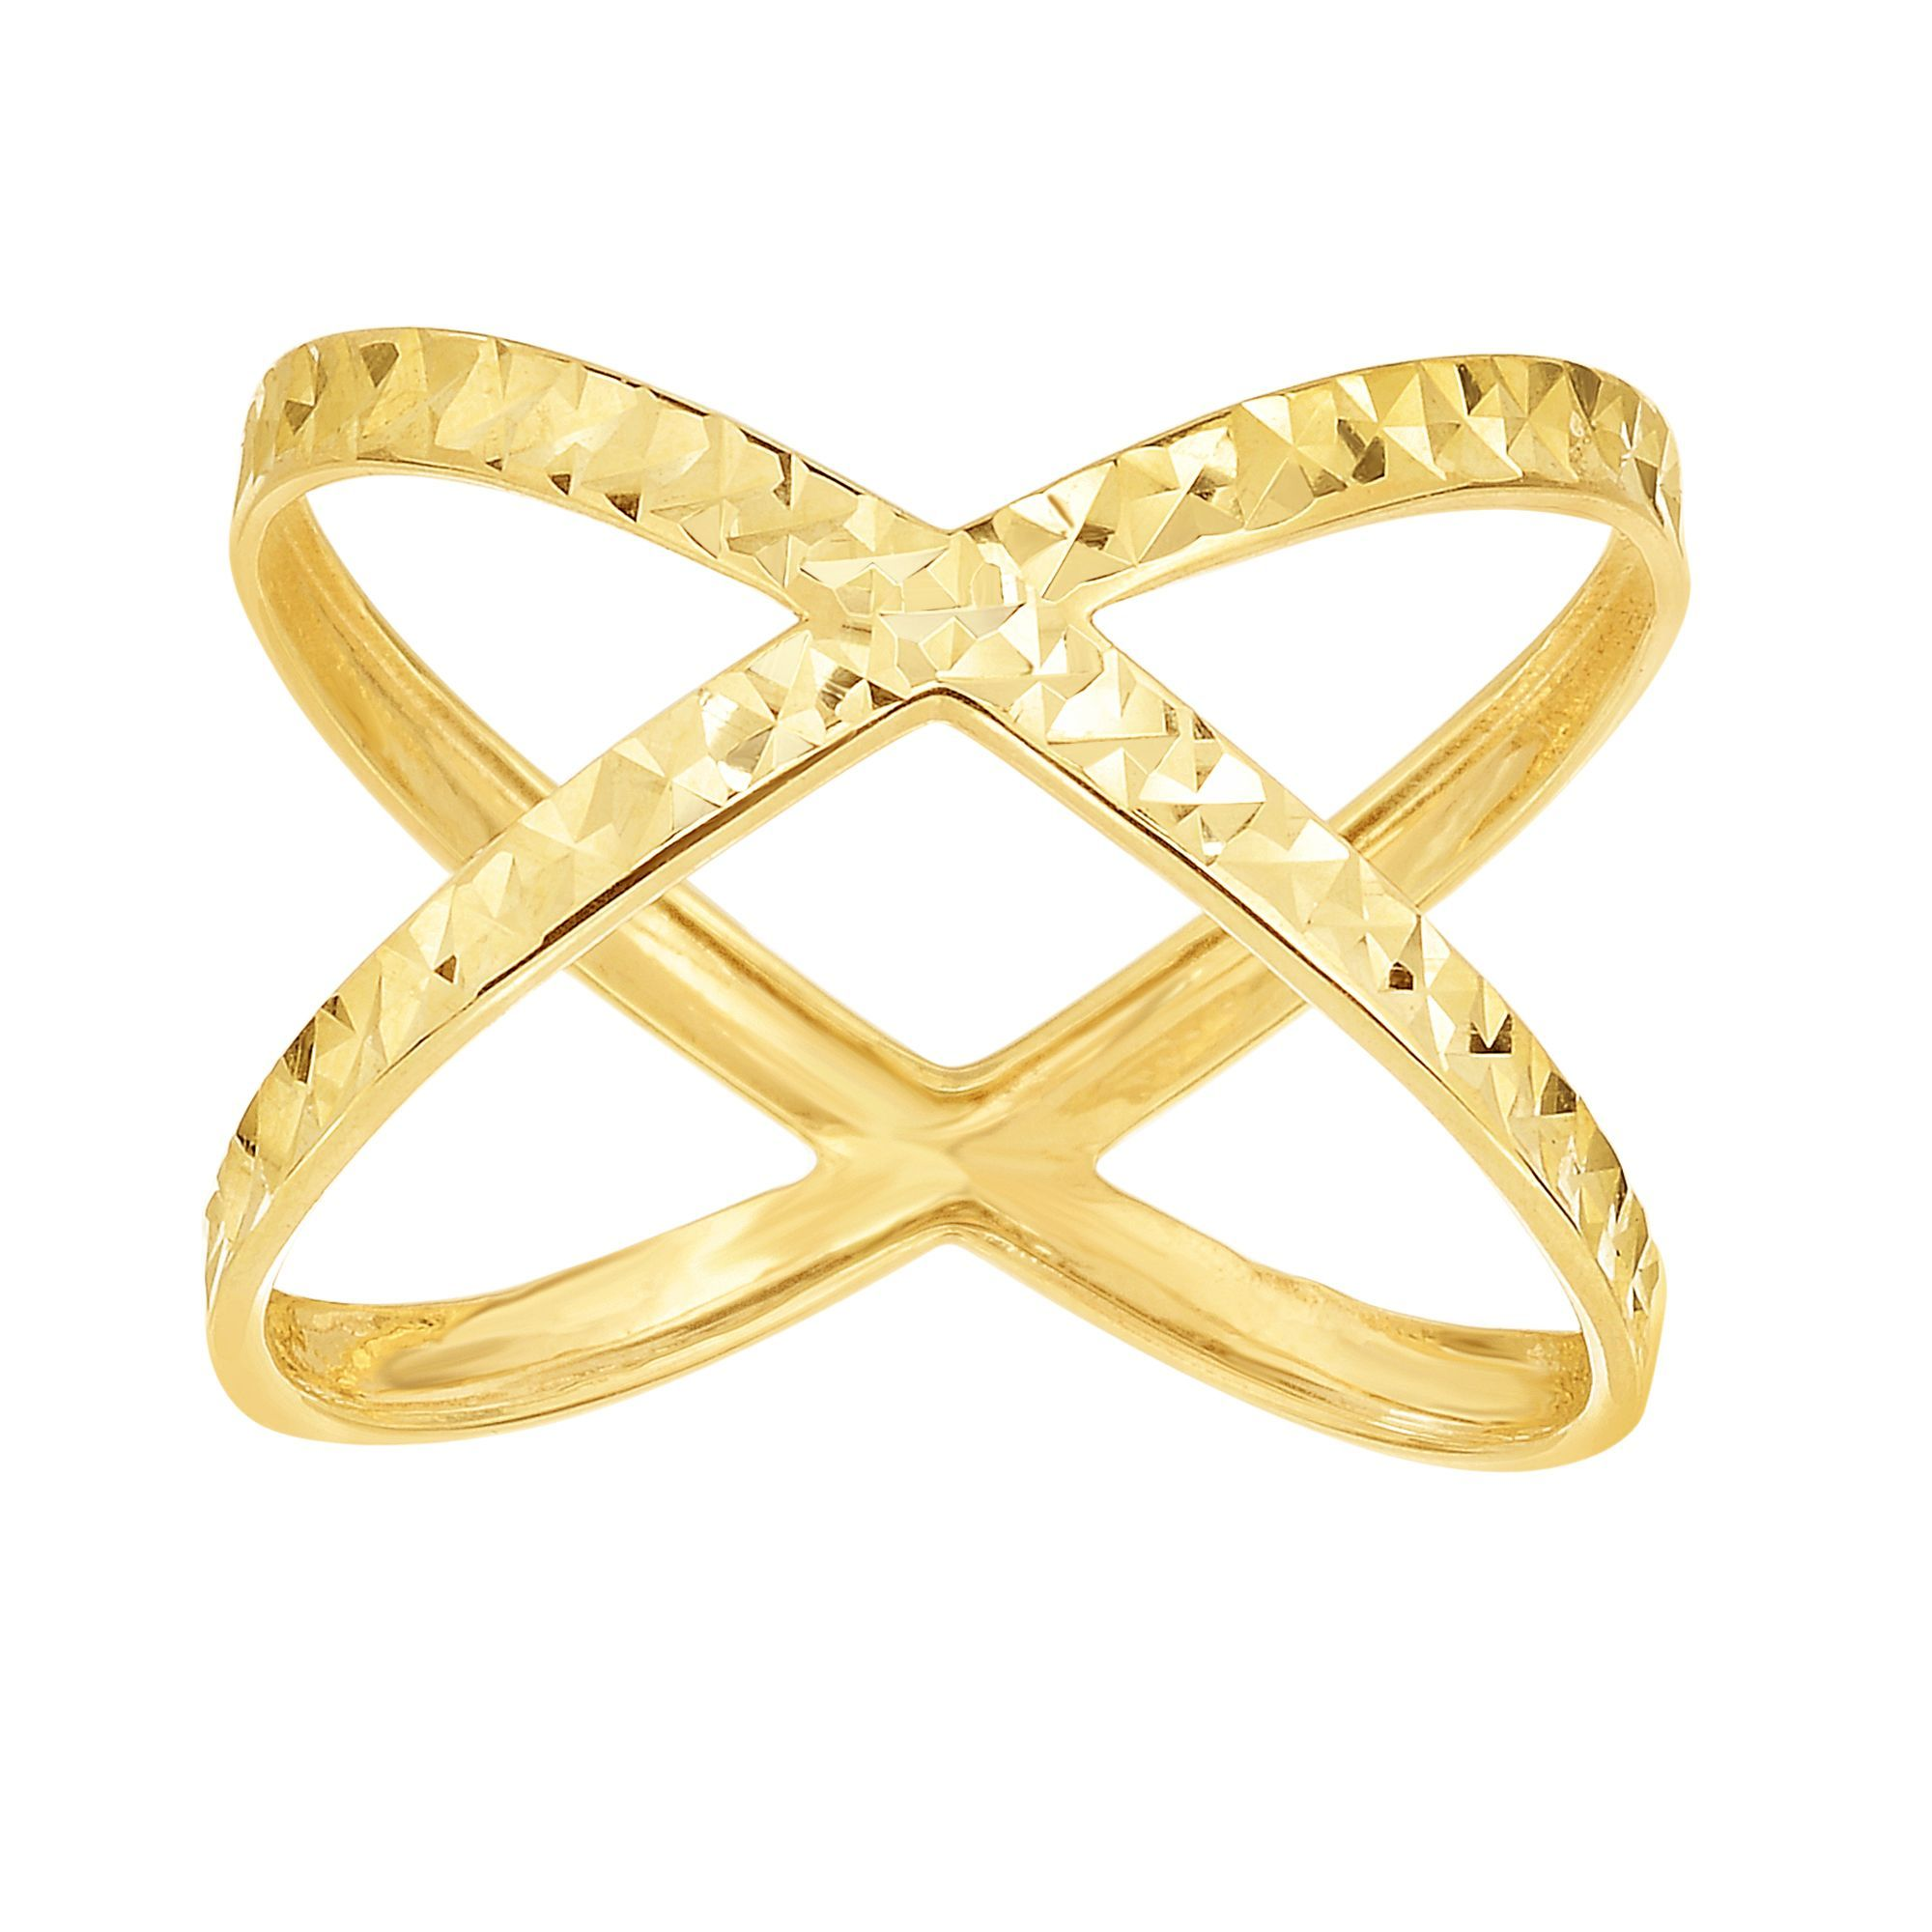 14 Karat Yellow Gold Diamond Cut Criss Cross X Ring